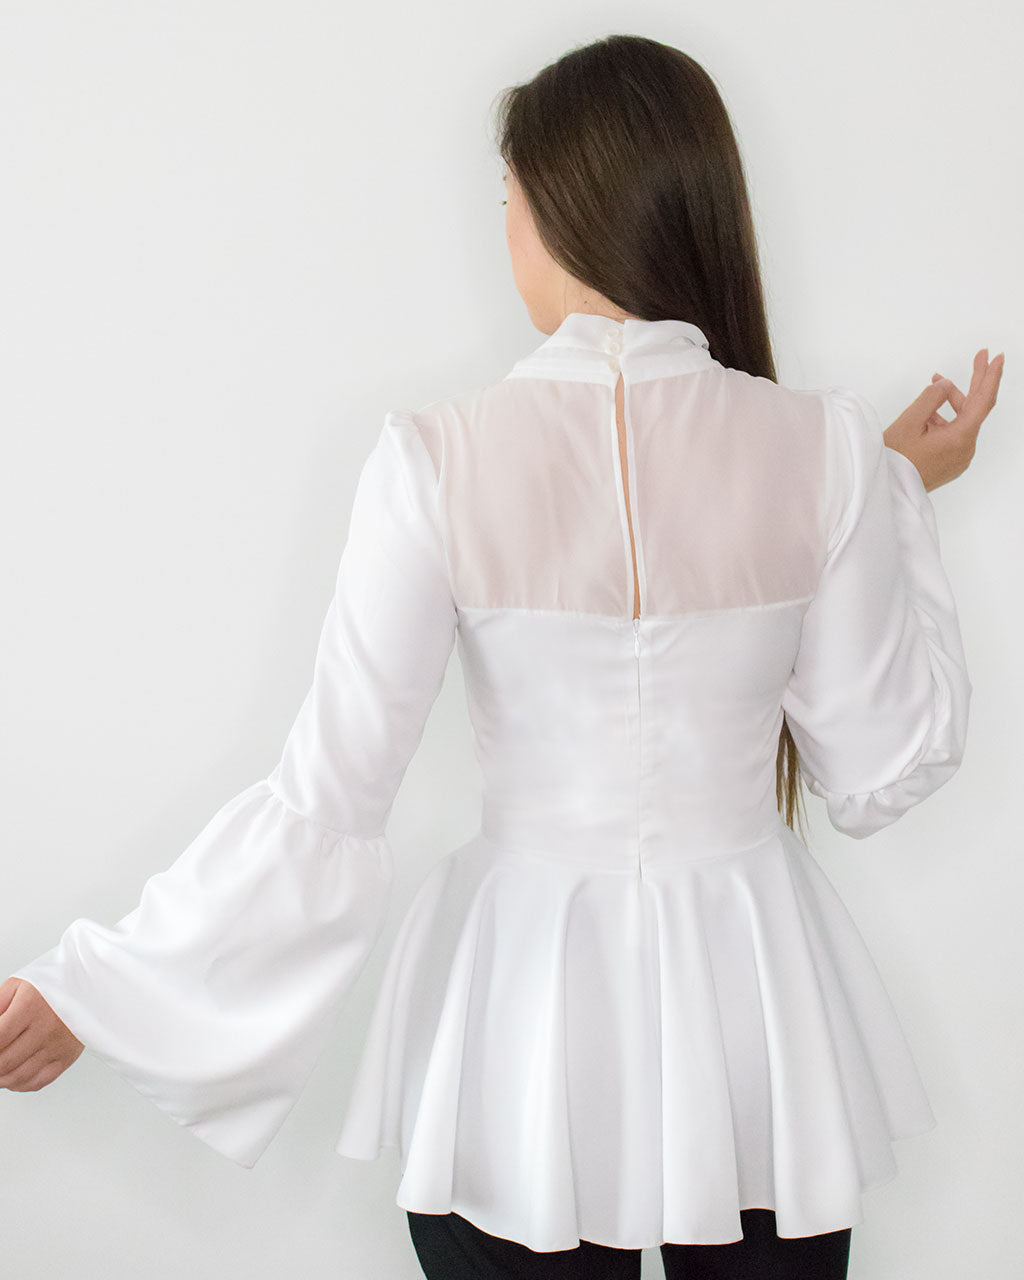 Back of designer white fit & flare recycled chiffon classy blouse with high neck and key hole ethically made in UK by ADKN